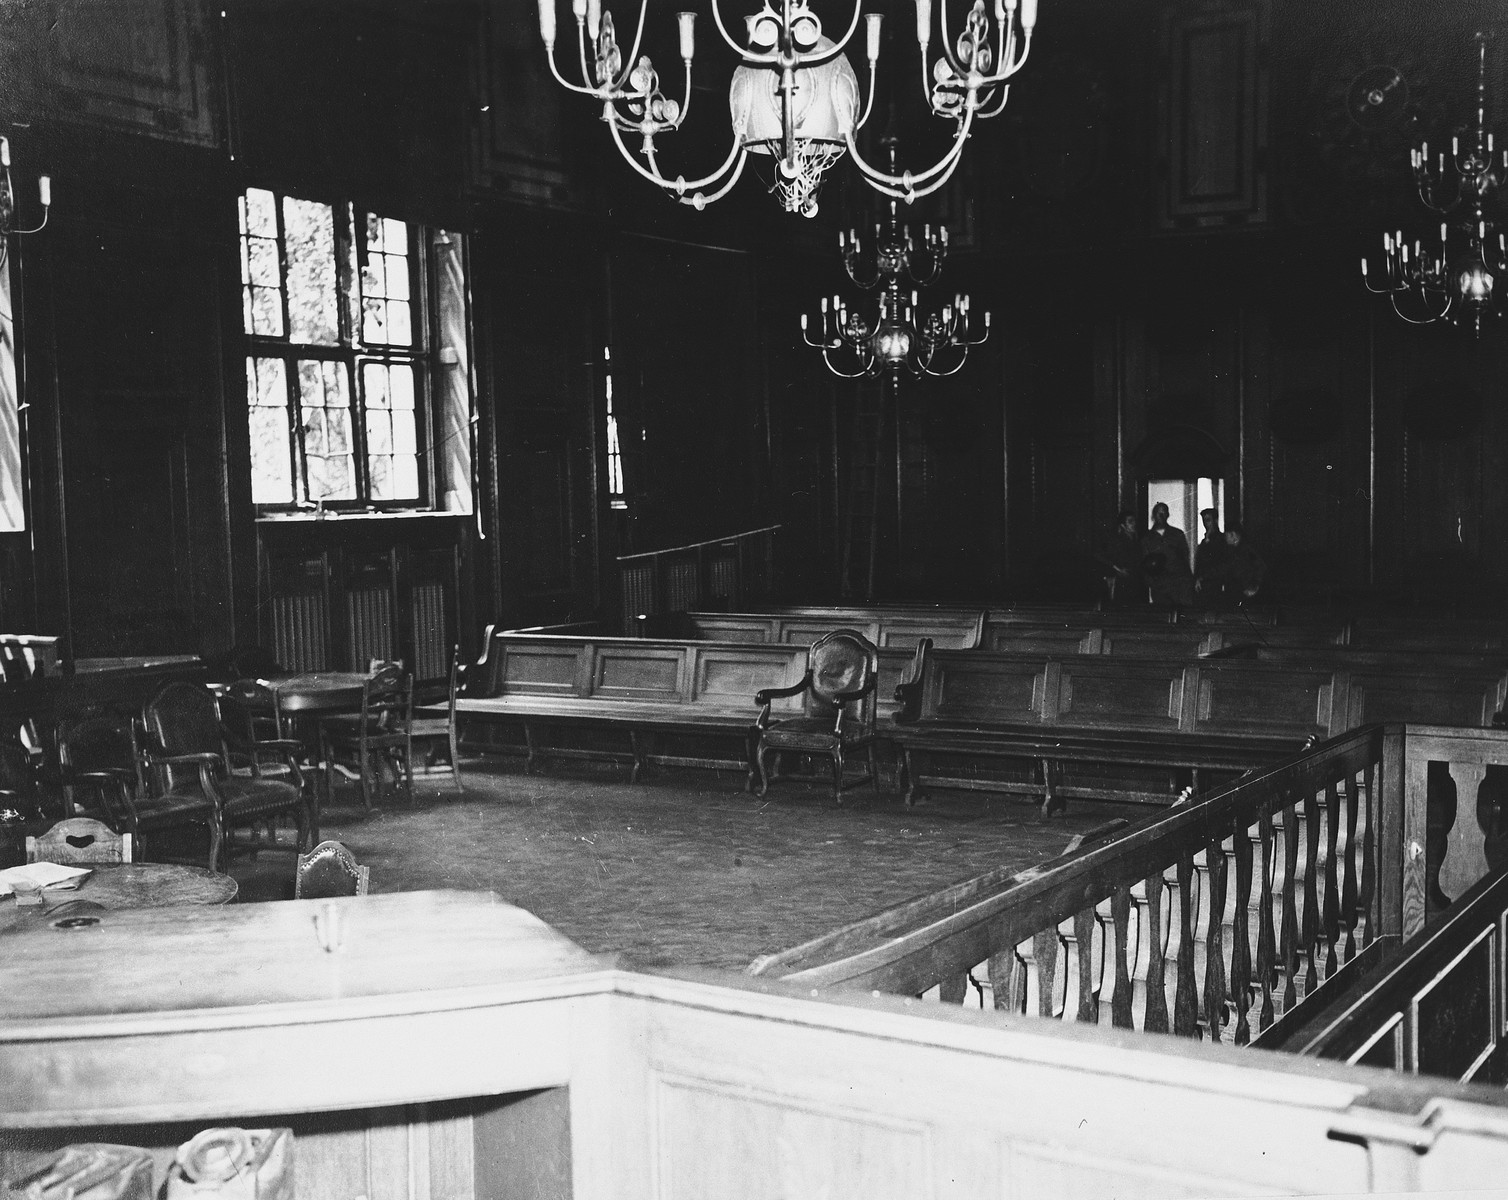 Interior view of the Palace of Justice in Nuremberg.